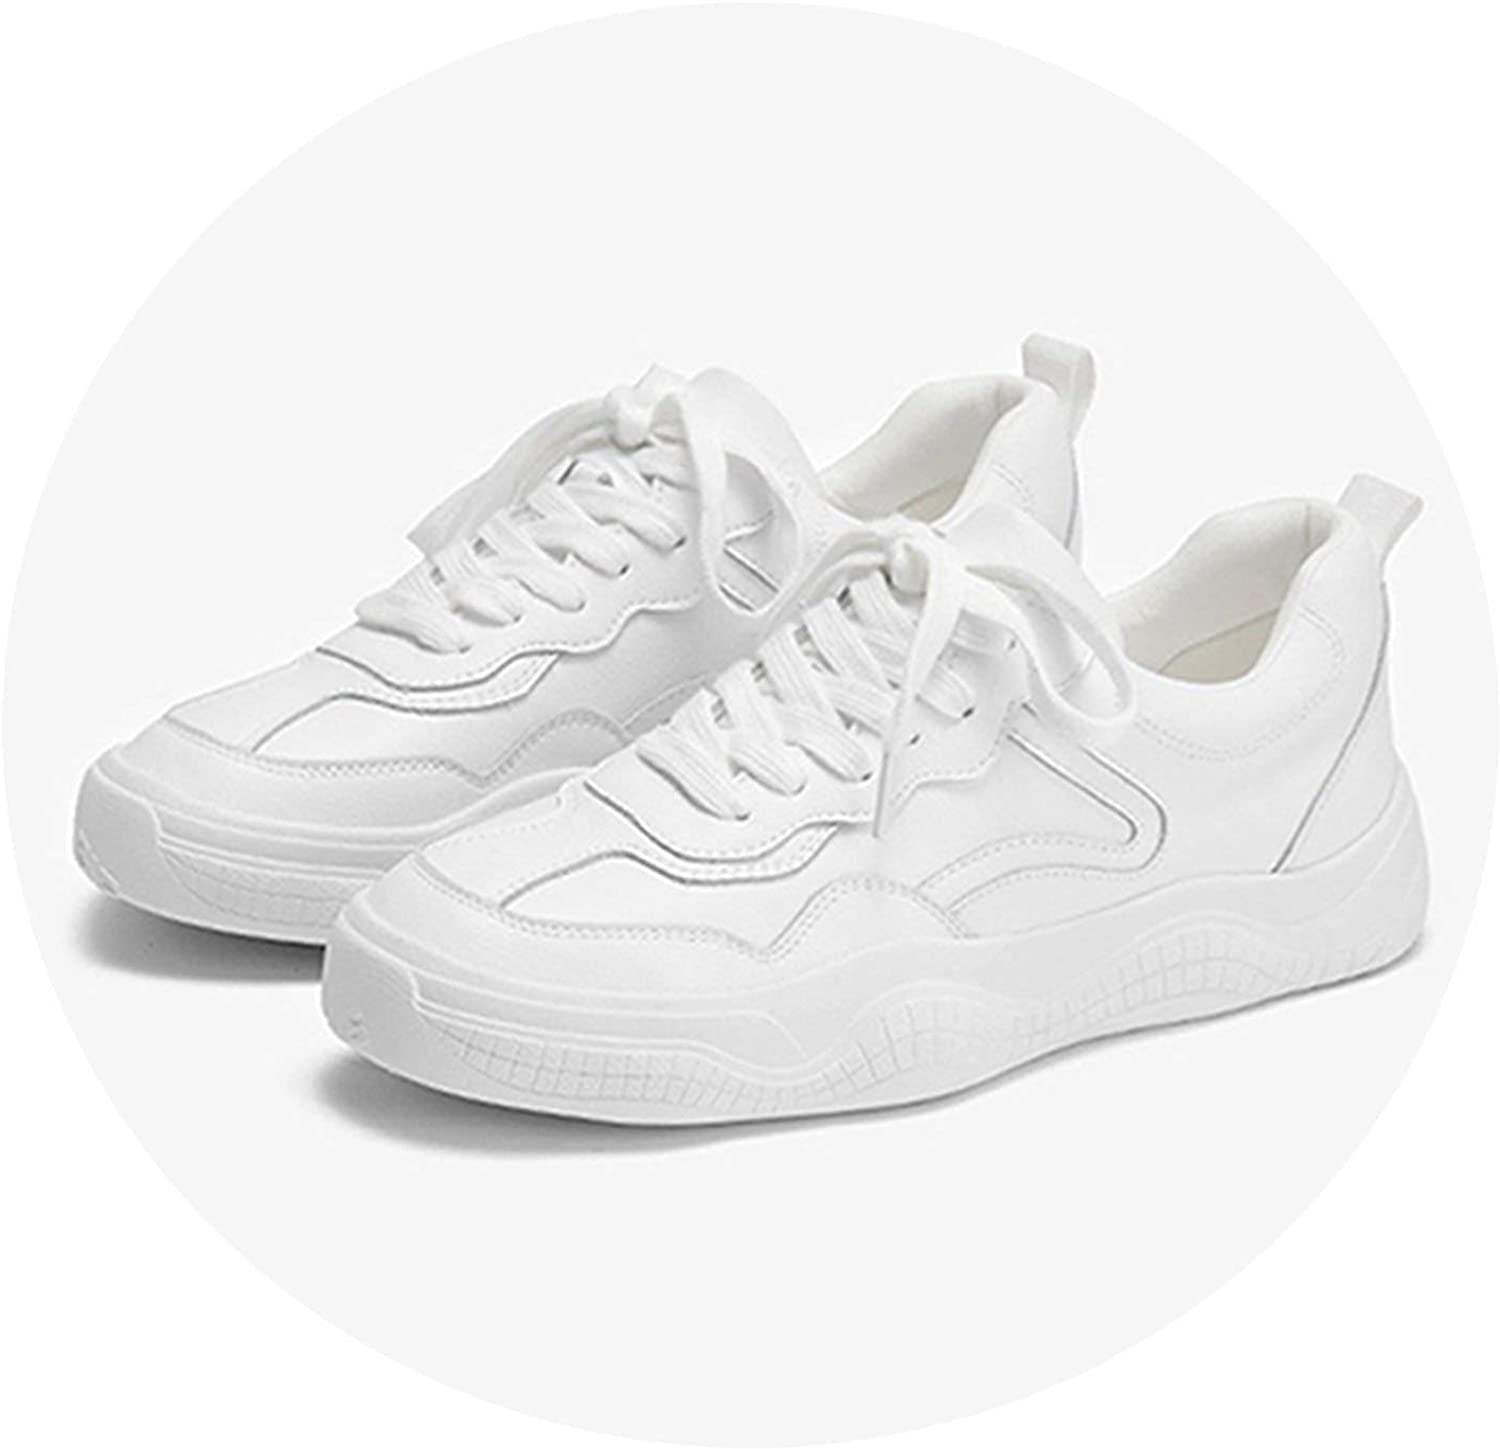 Genuine Leather Women Sneakers White shoes Platform Lace Up Woman Casual shoes Thick Heels Spring Autumn Female Flats Plus Size